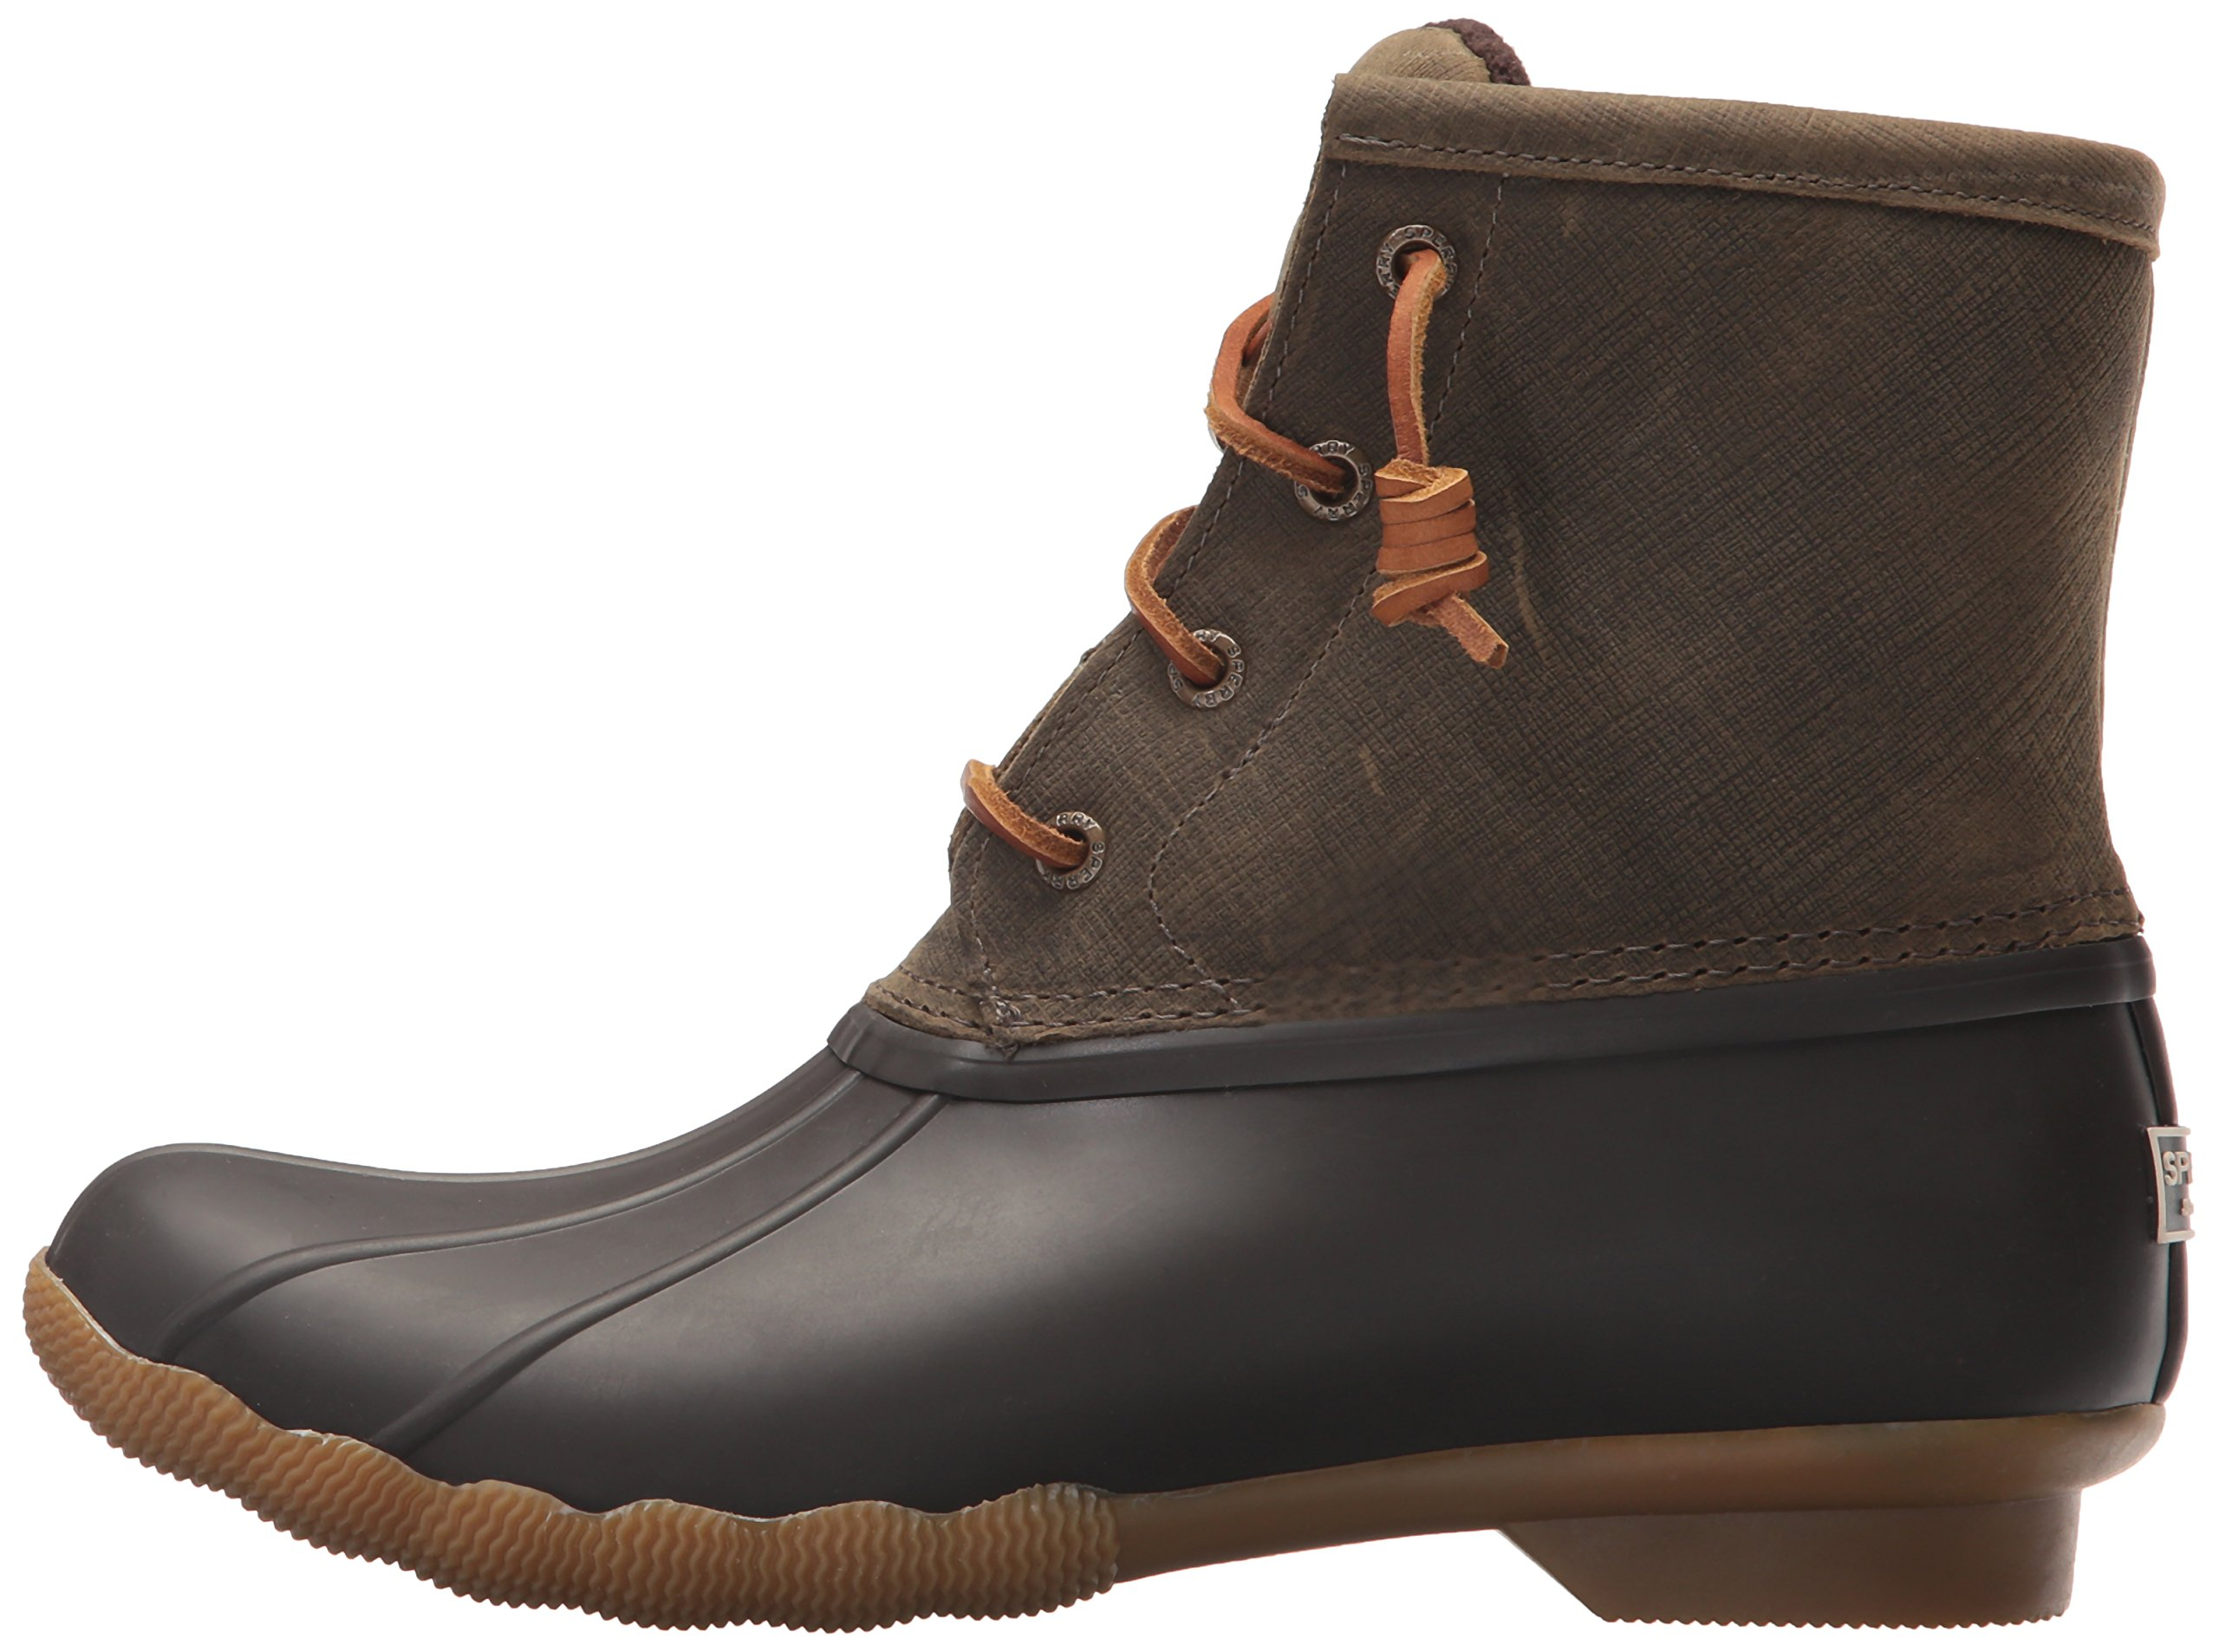 Sperry Top-Sider Women's Saltwater Rain Boot, Brown/Olive, 11 Medium US by Sperry Top-Sider (Image #5)